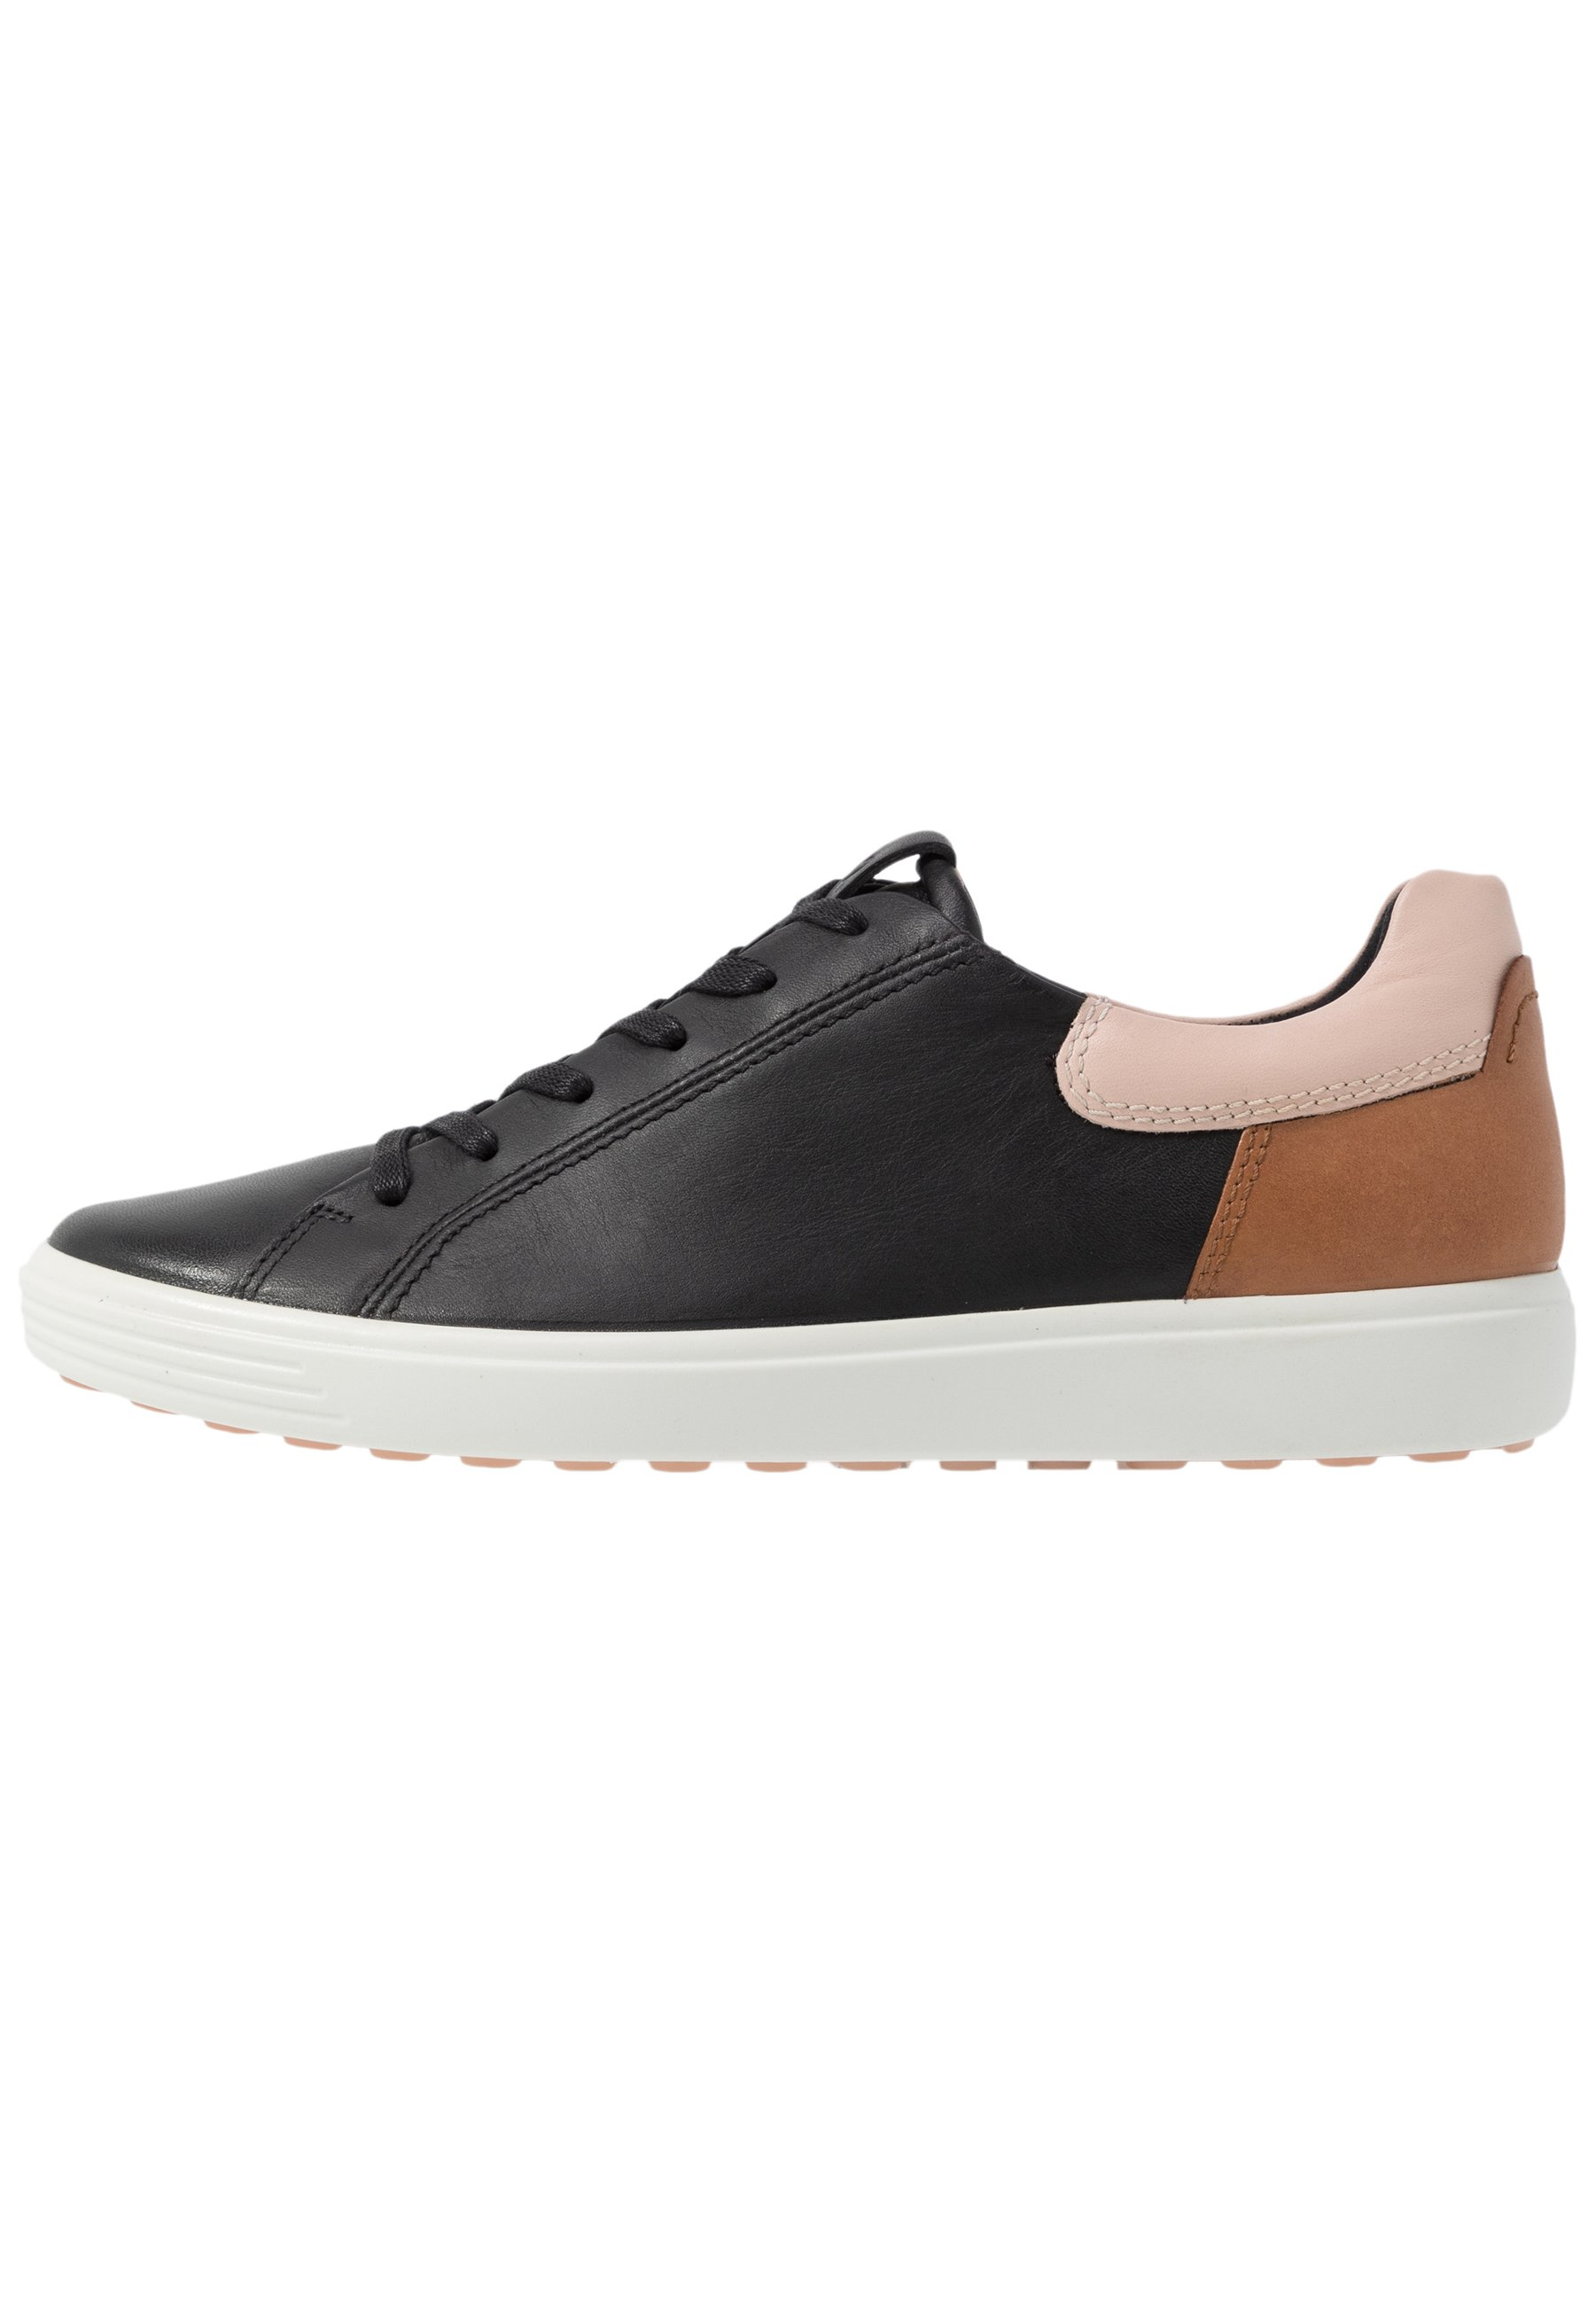 ecco ECCO SOFT 7 W - Sneakers - black/rose dust/lion